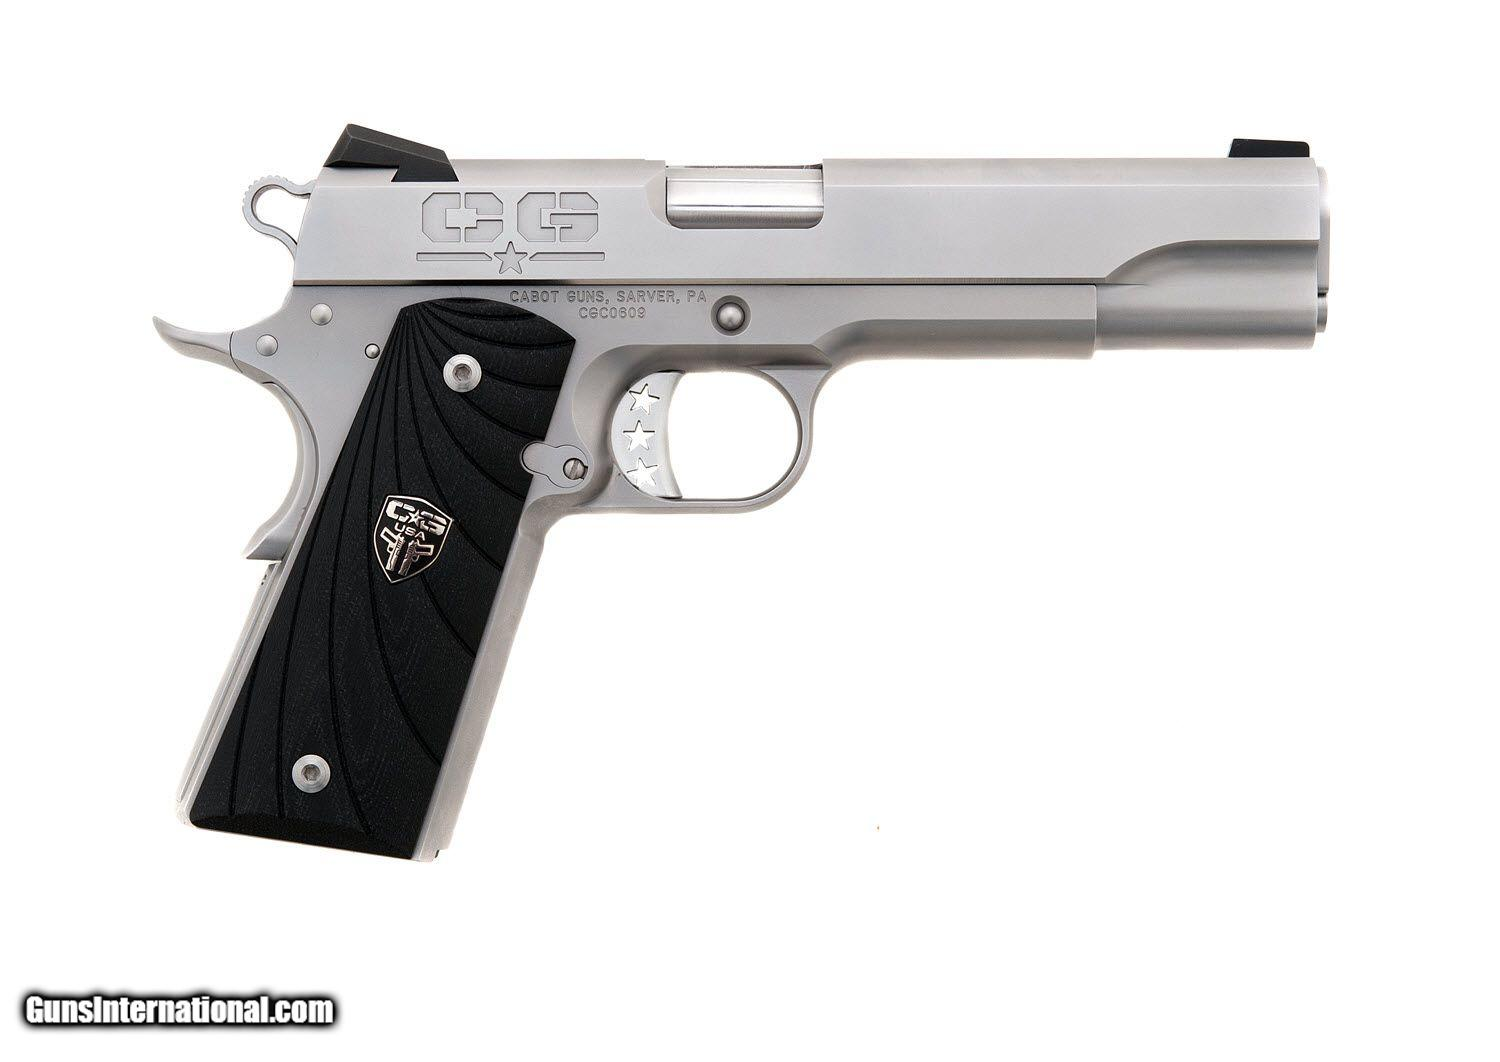 Cabot Gun Company - S100 Naked 1911 45 acp for sale